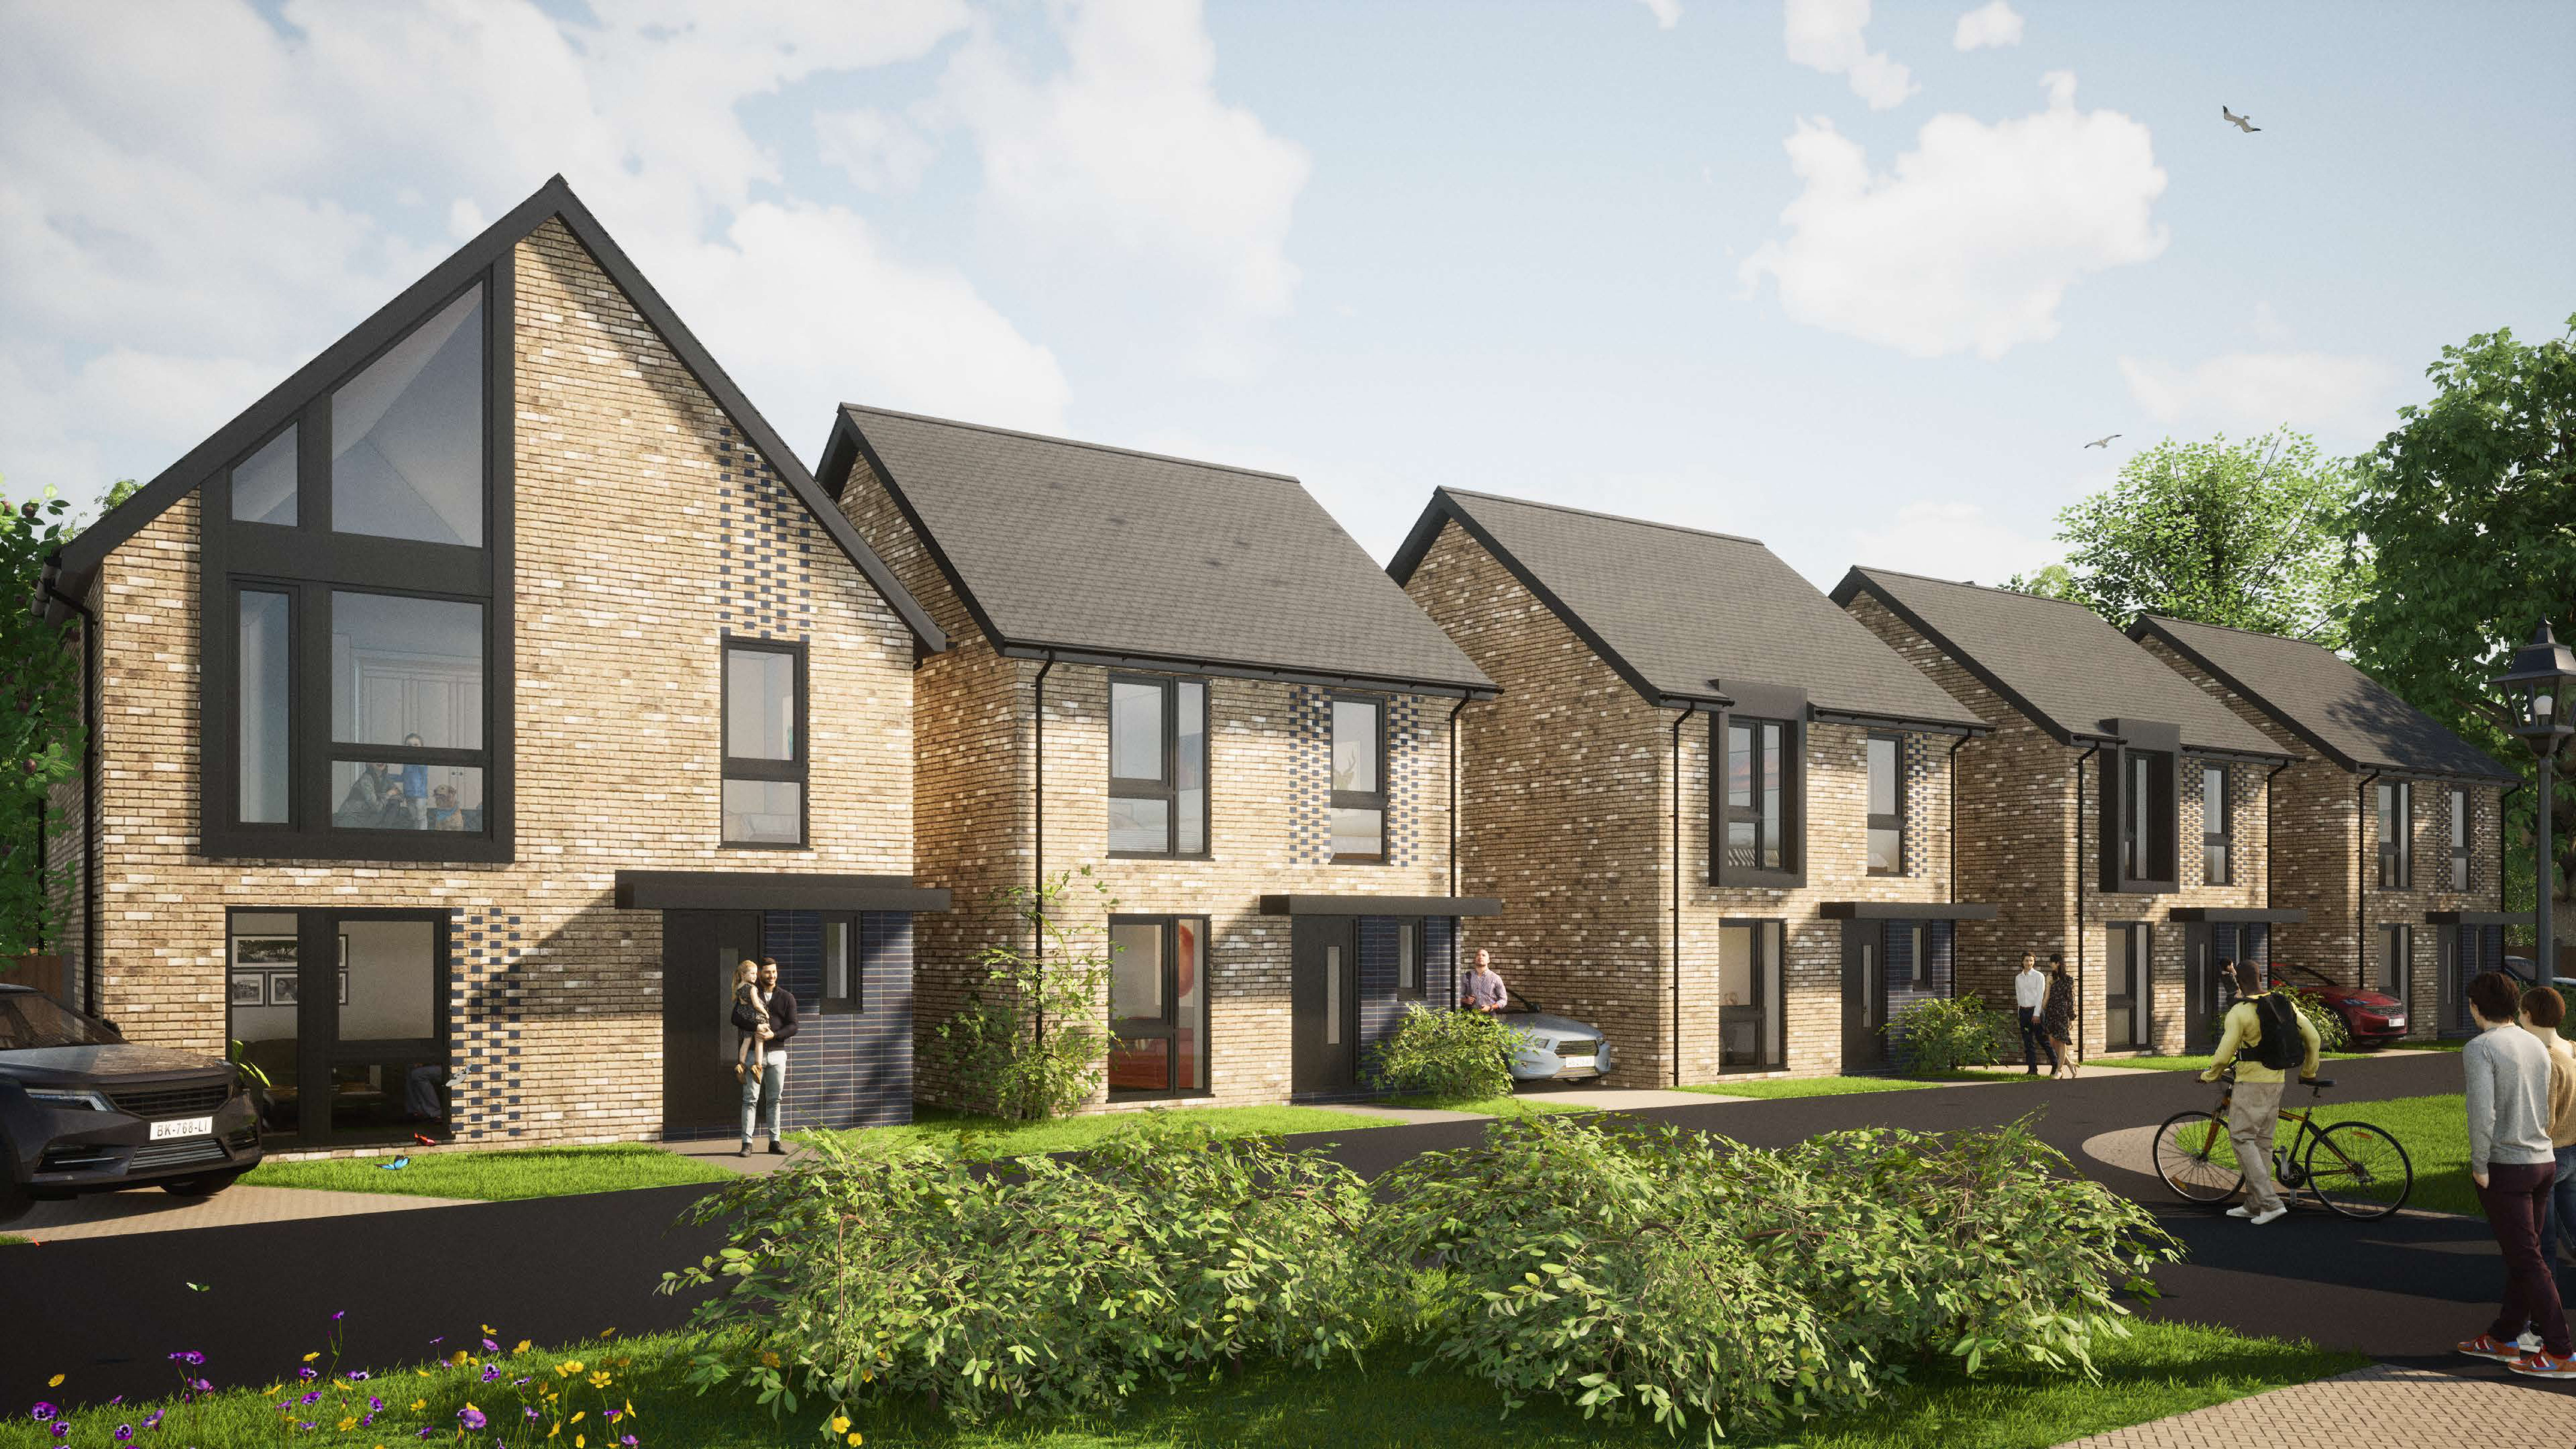 Creating the Full Facade for New Winchester Development of Eco-Homes